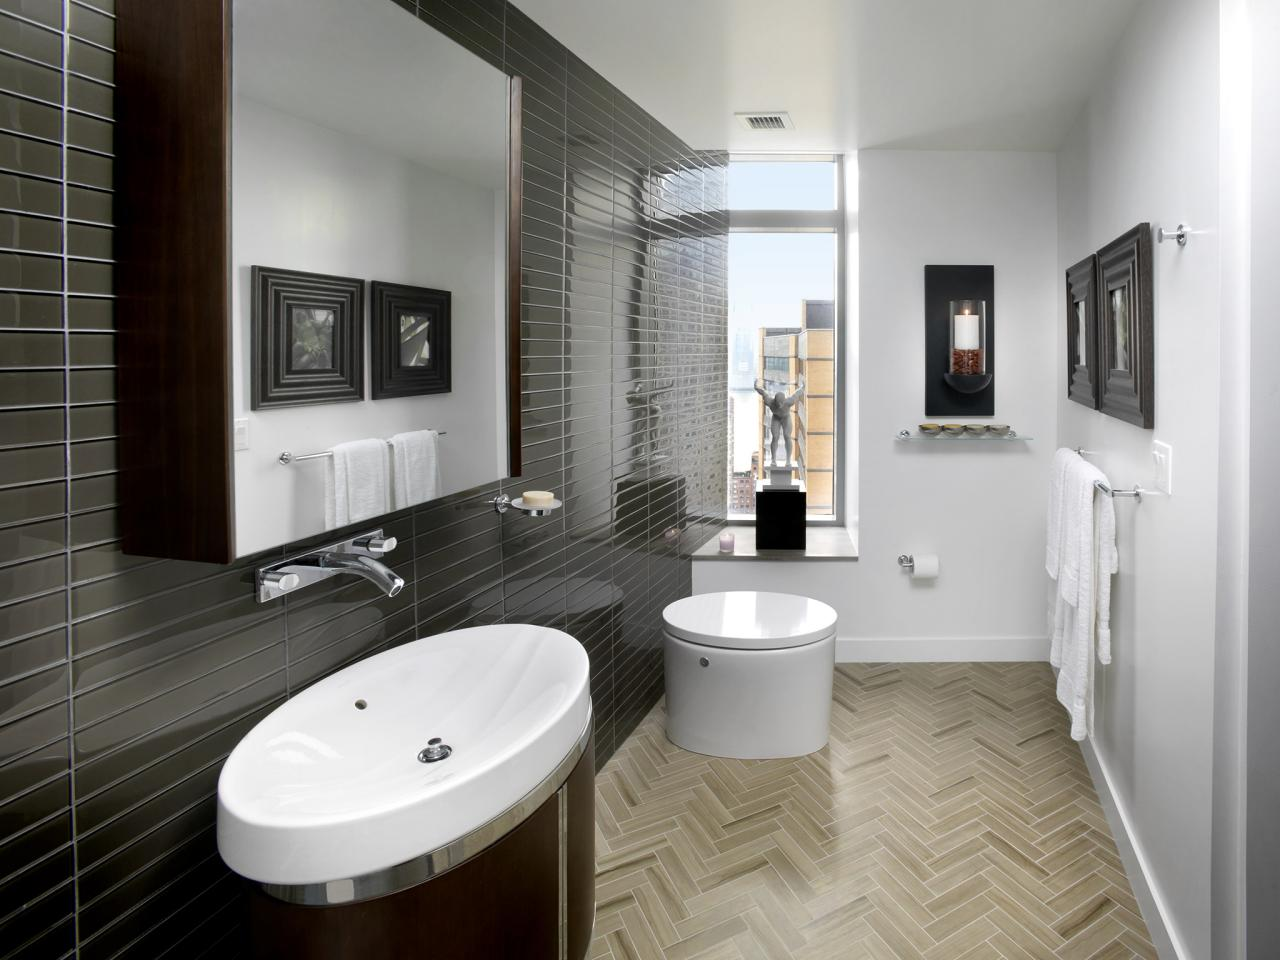 Small Bathrooms Design Ideas small bathtub ideas and options: pictures & tips from hgtv | hgtv